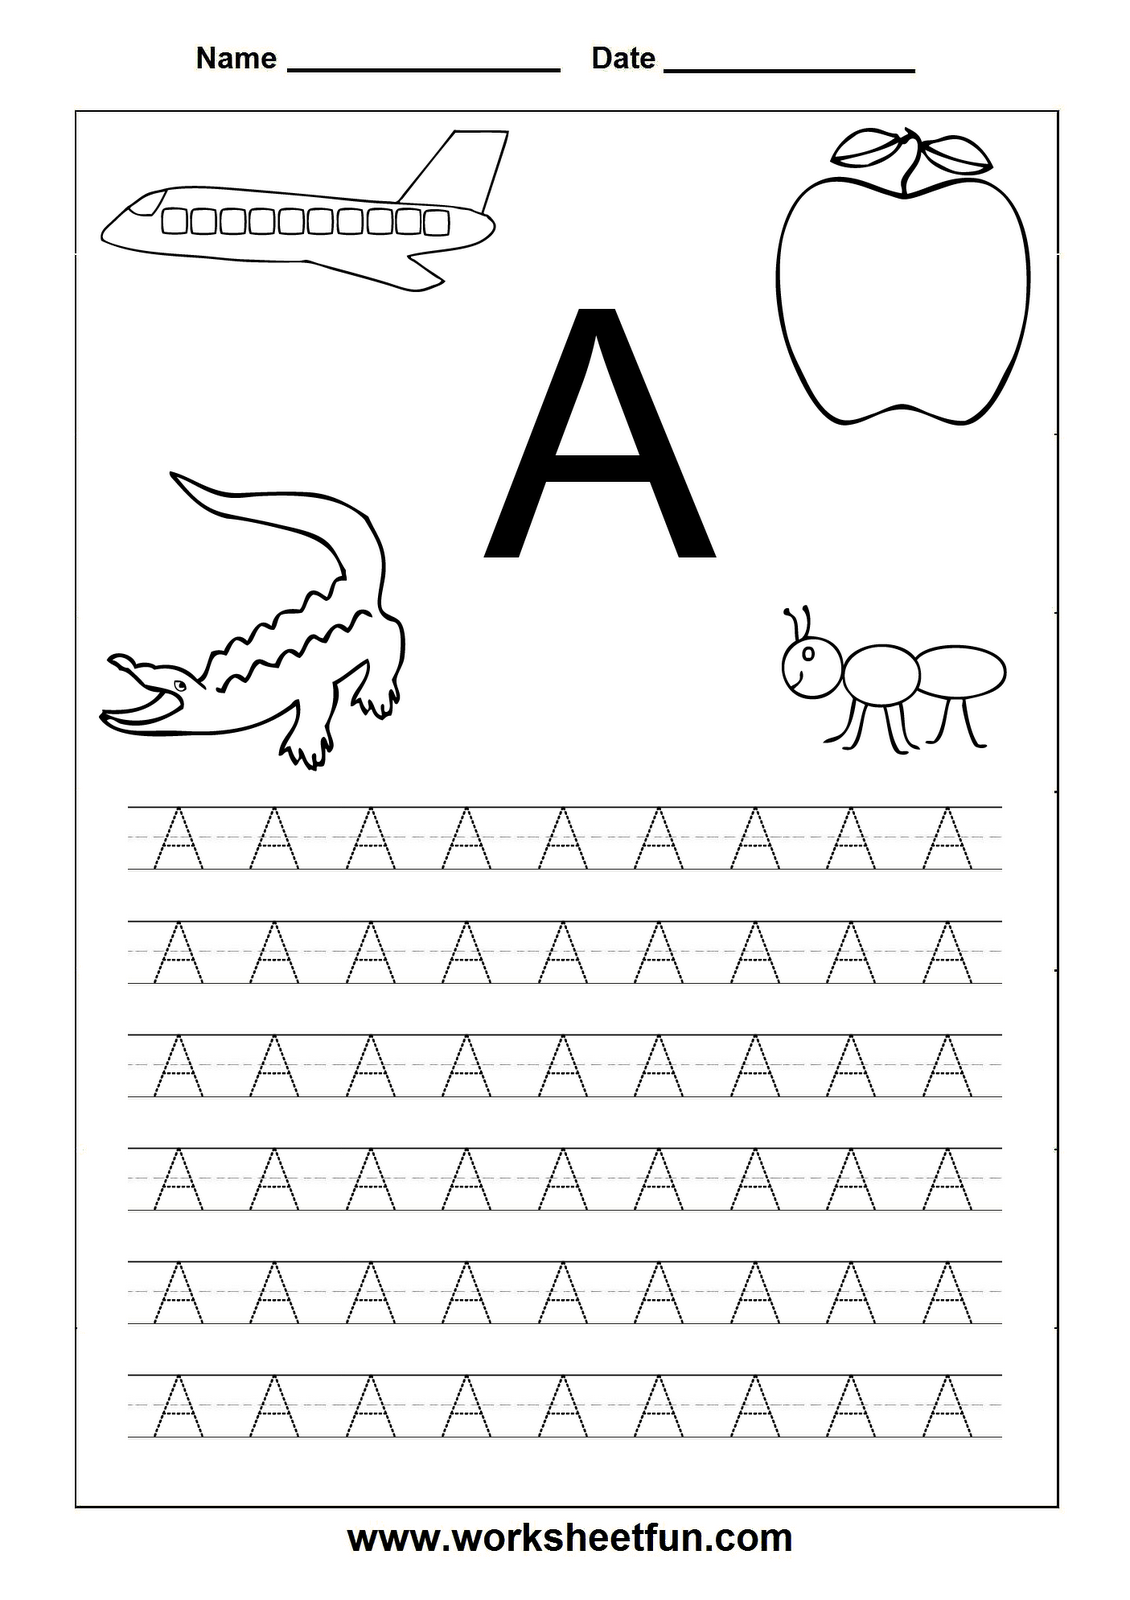 Letter Worksheets For Kindergarten Printable Letters – Free Alphabet Worksheets